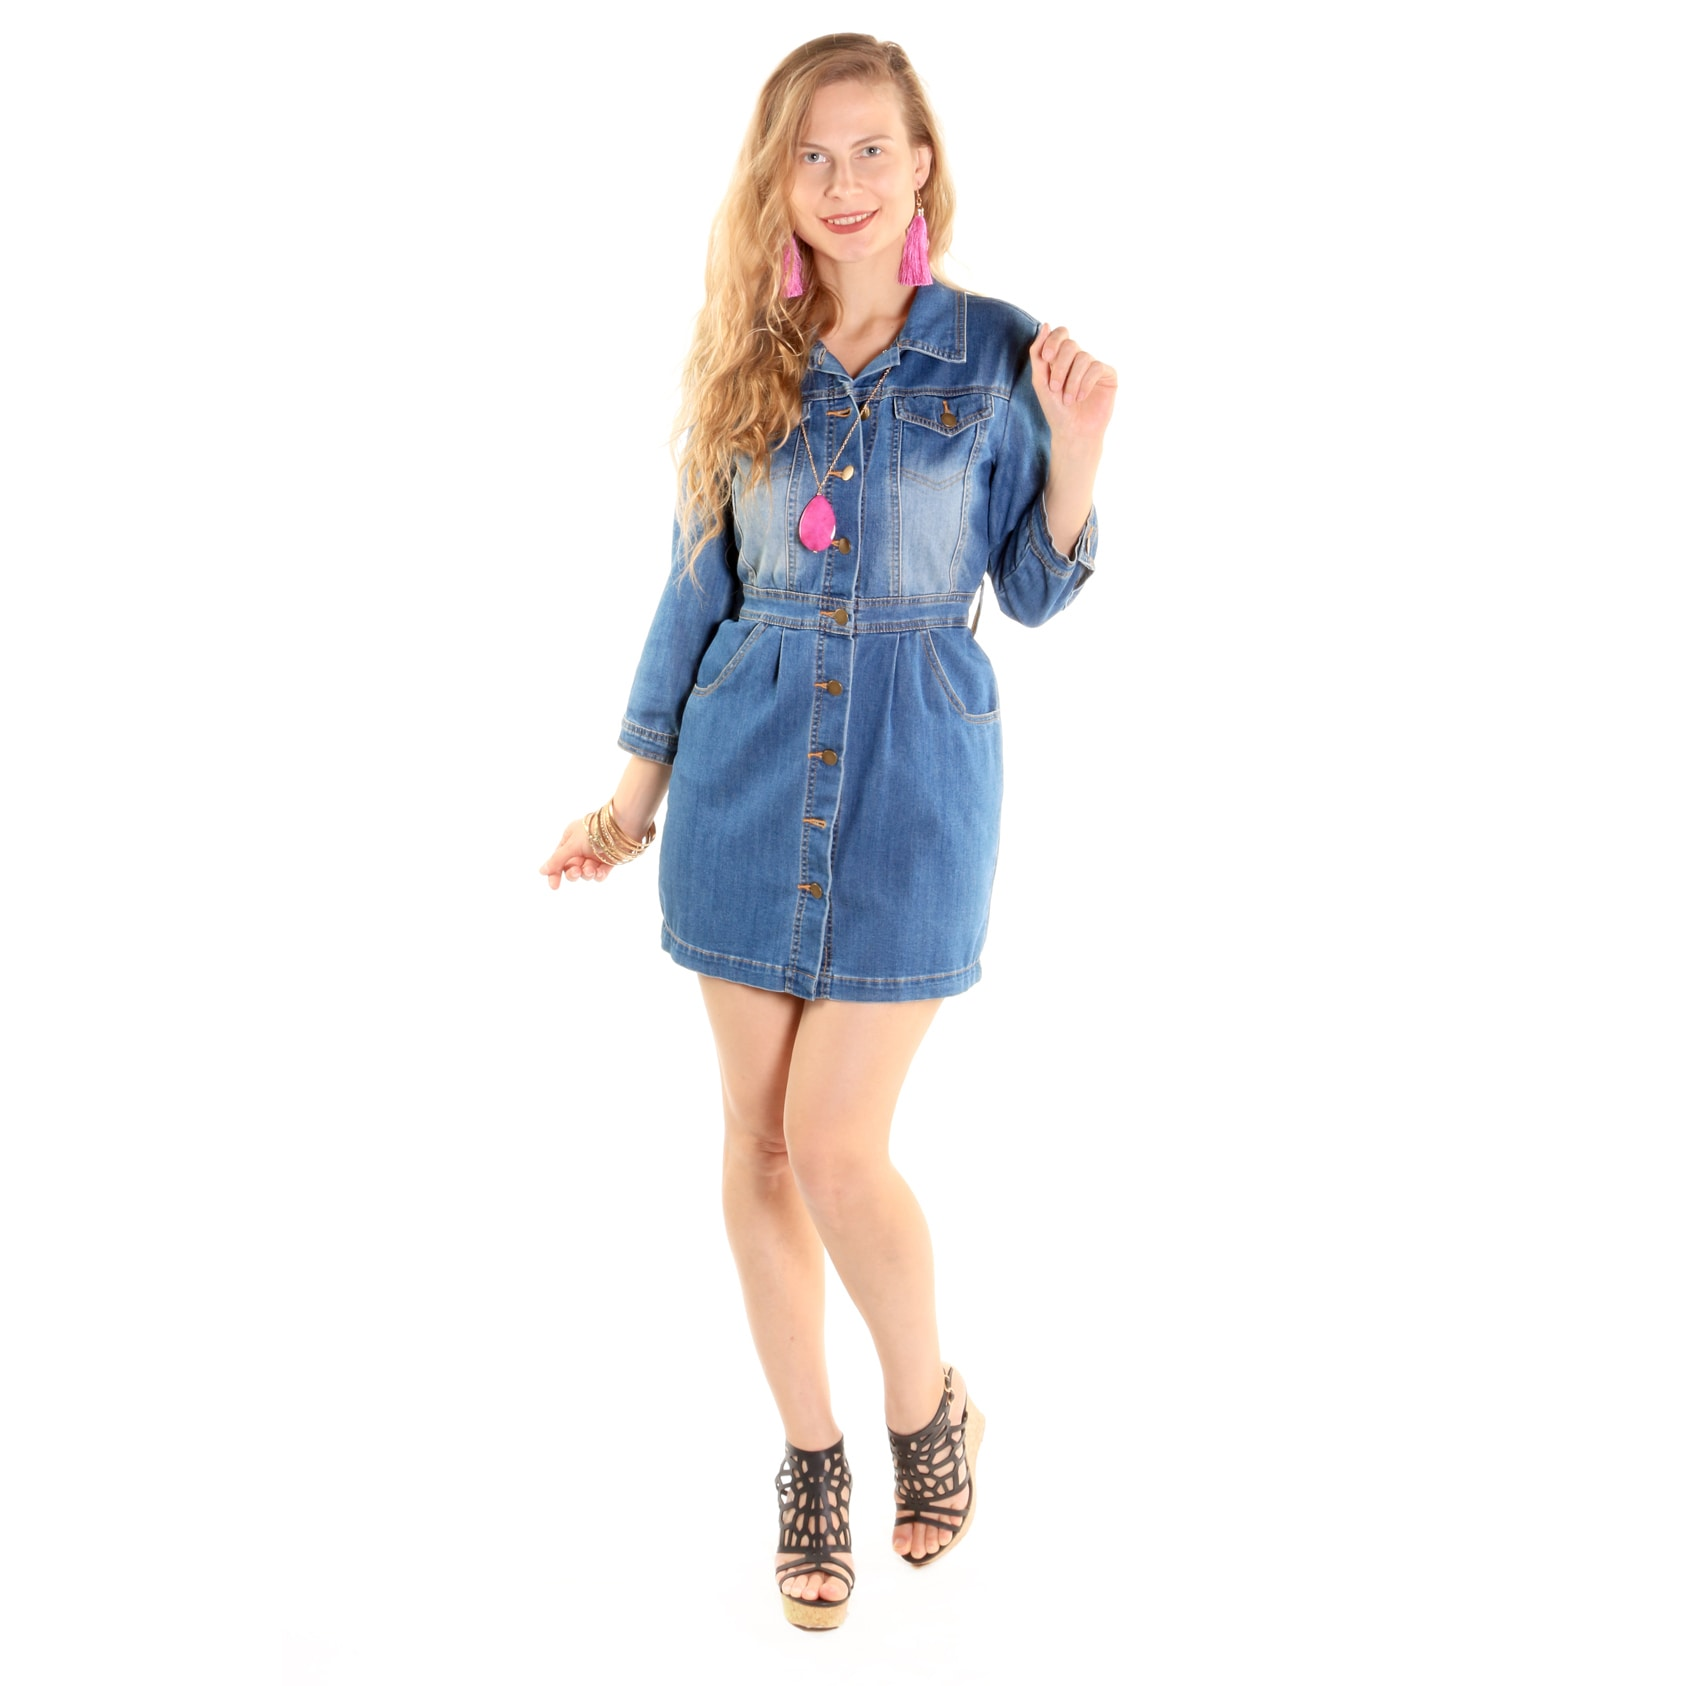 Hadari Xehar Women's Casual Sexy Denim Shirt Dress (L), Blue